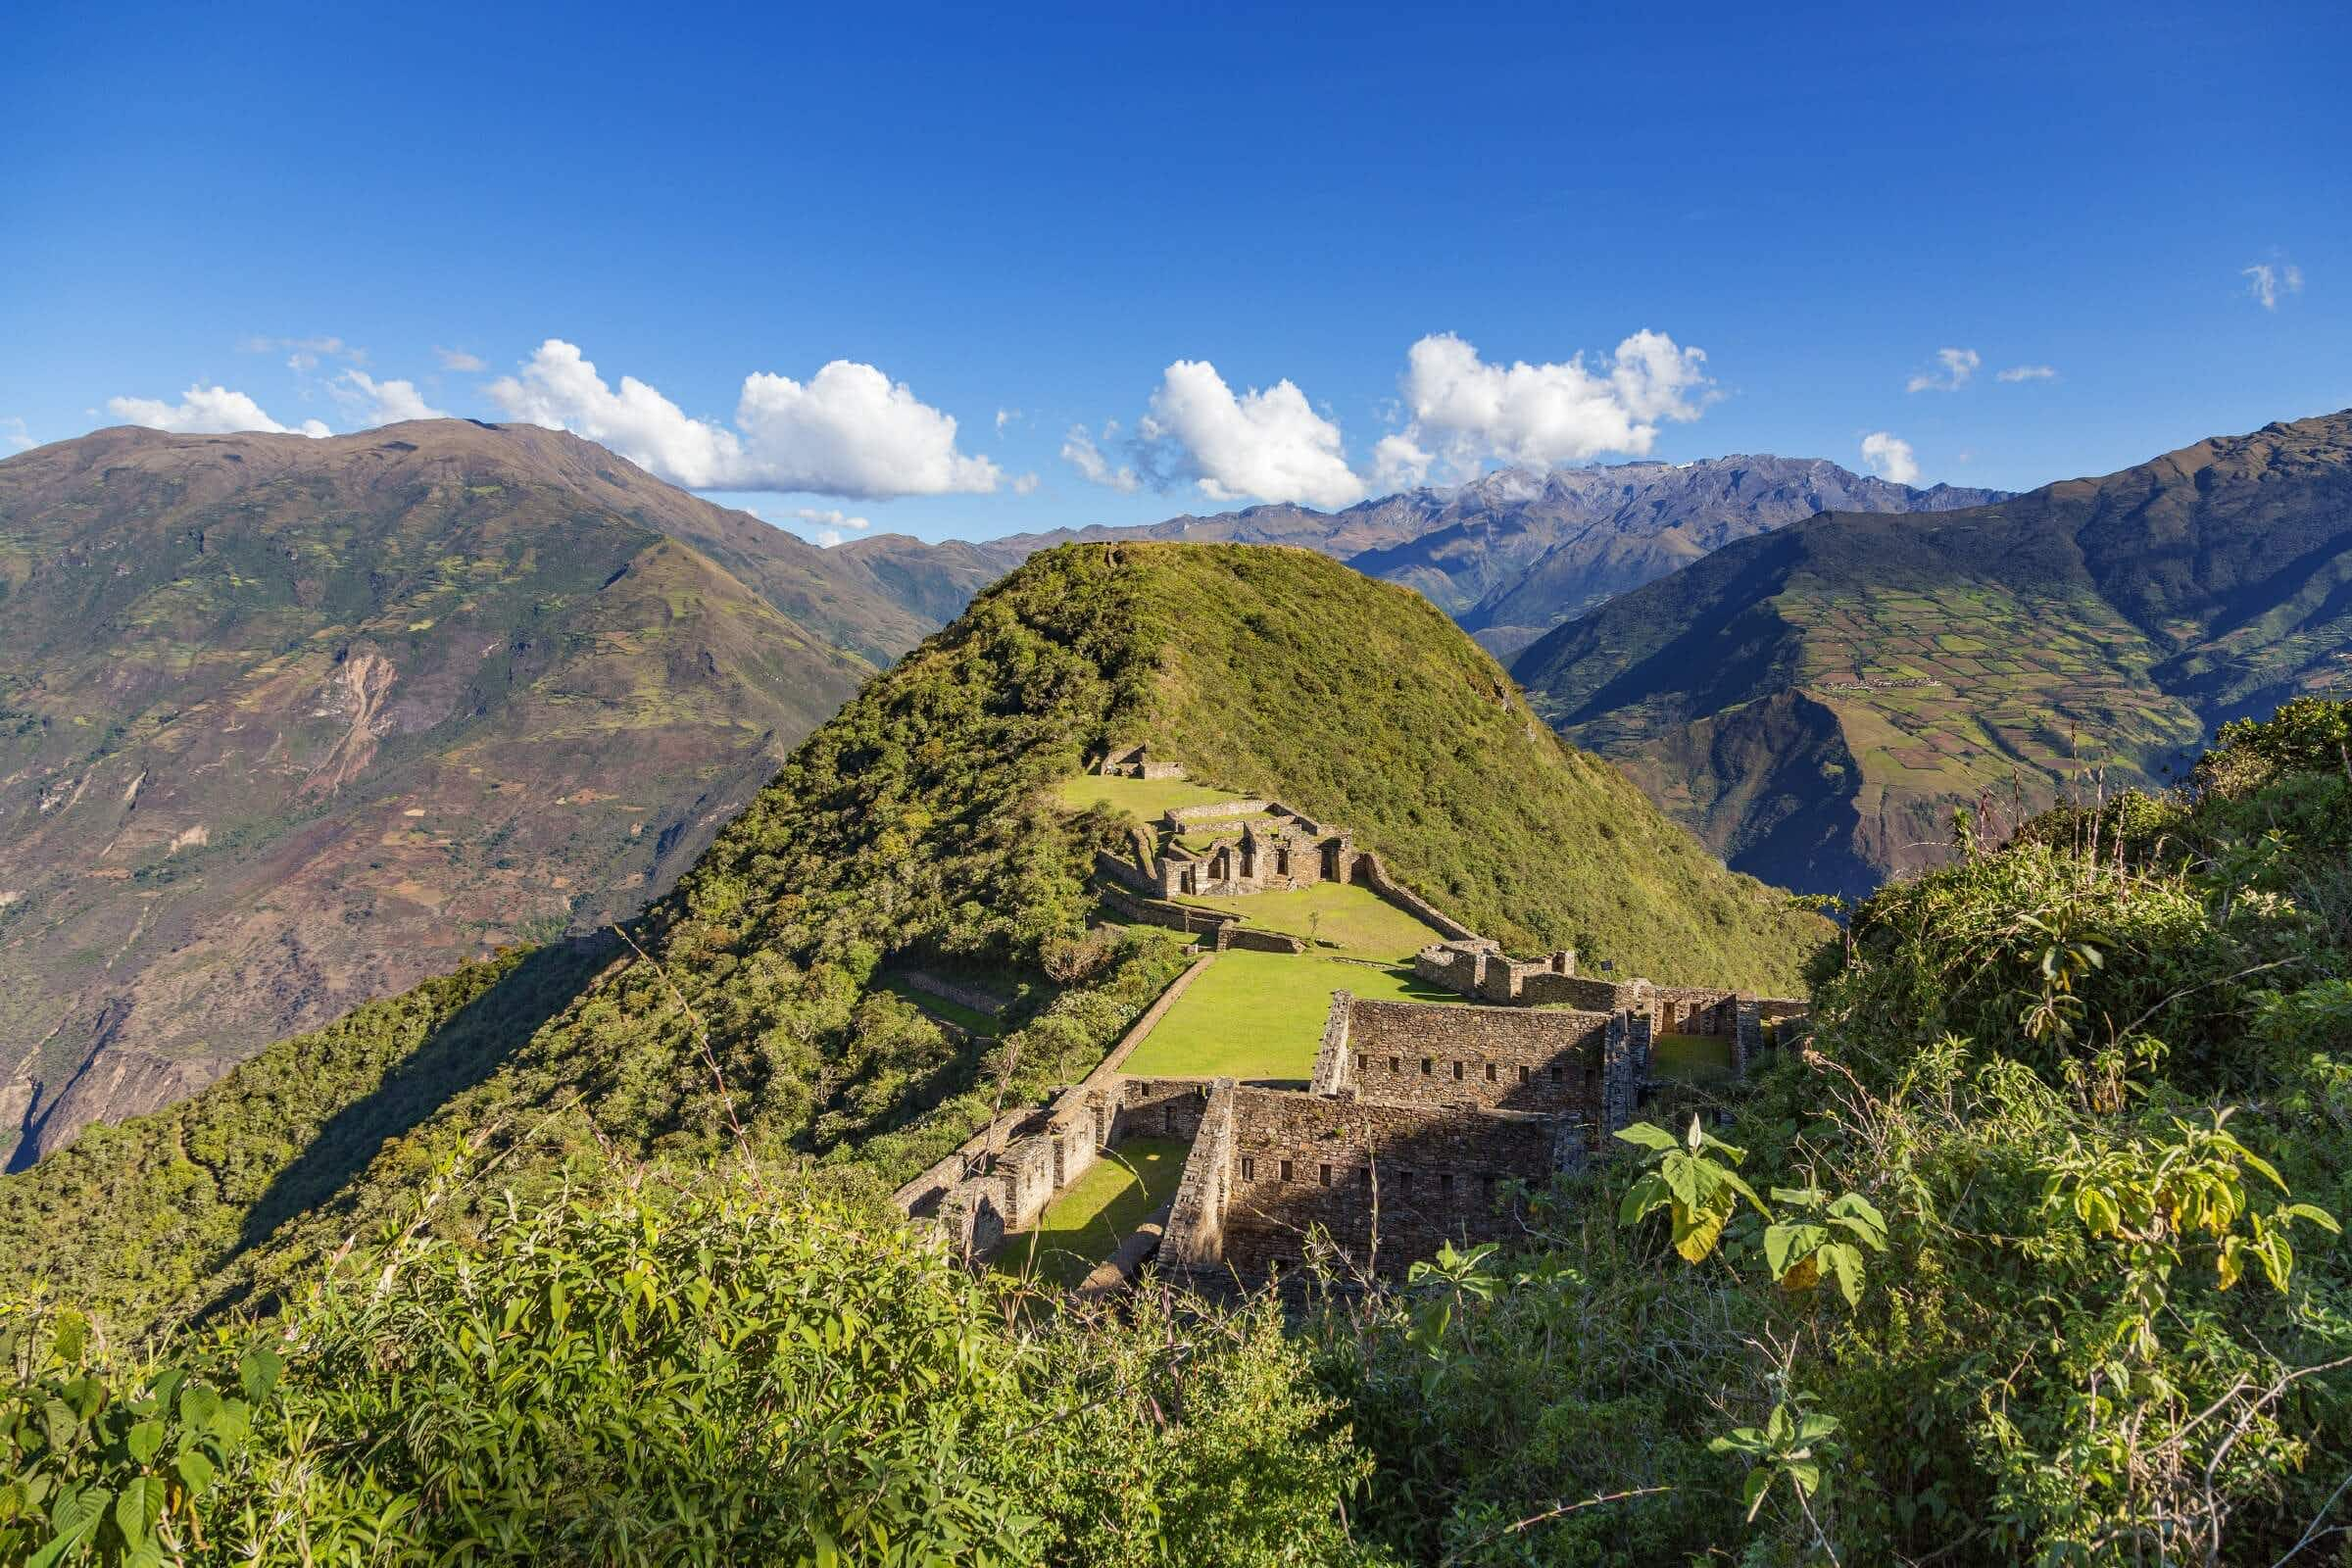 Peru wants travellers to discover the lost city that rivals Machu Picchu